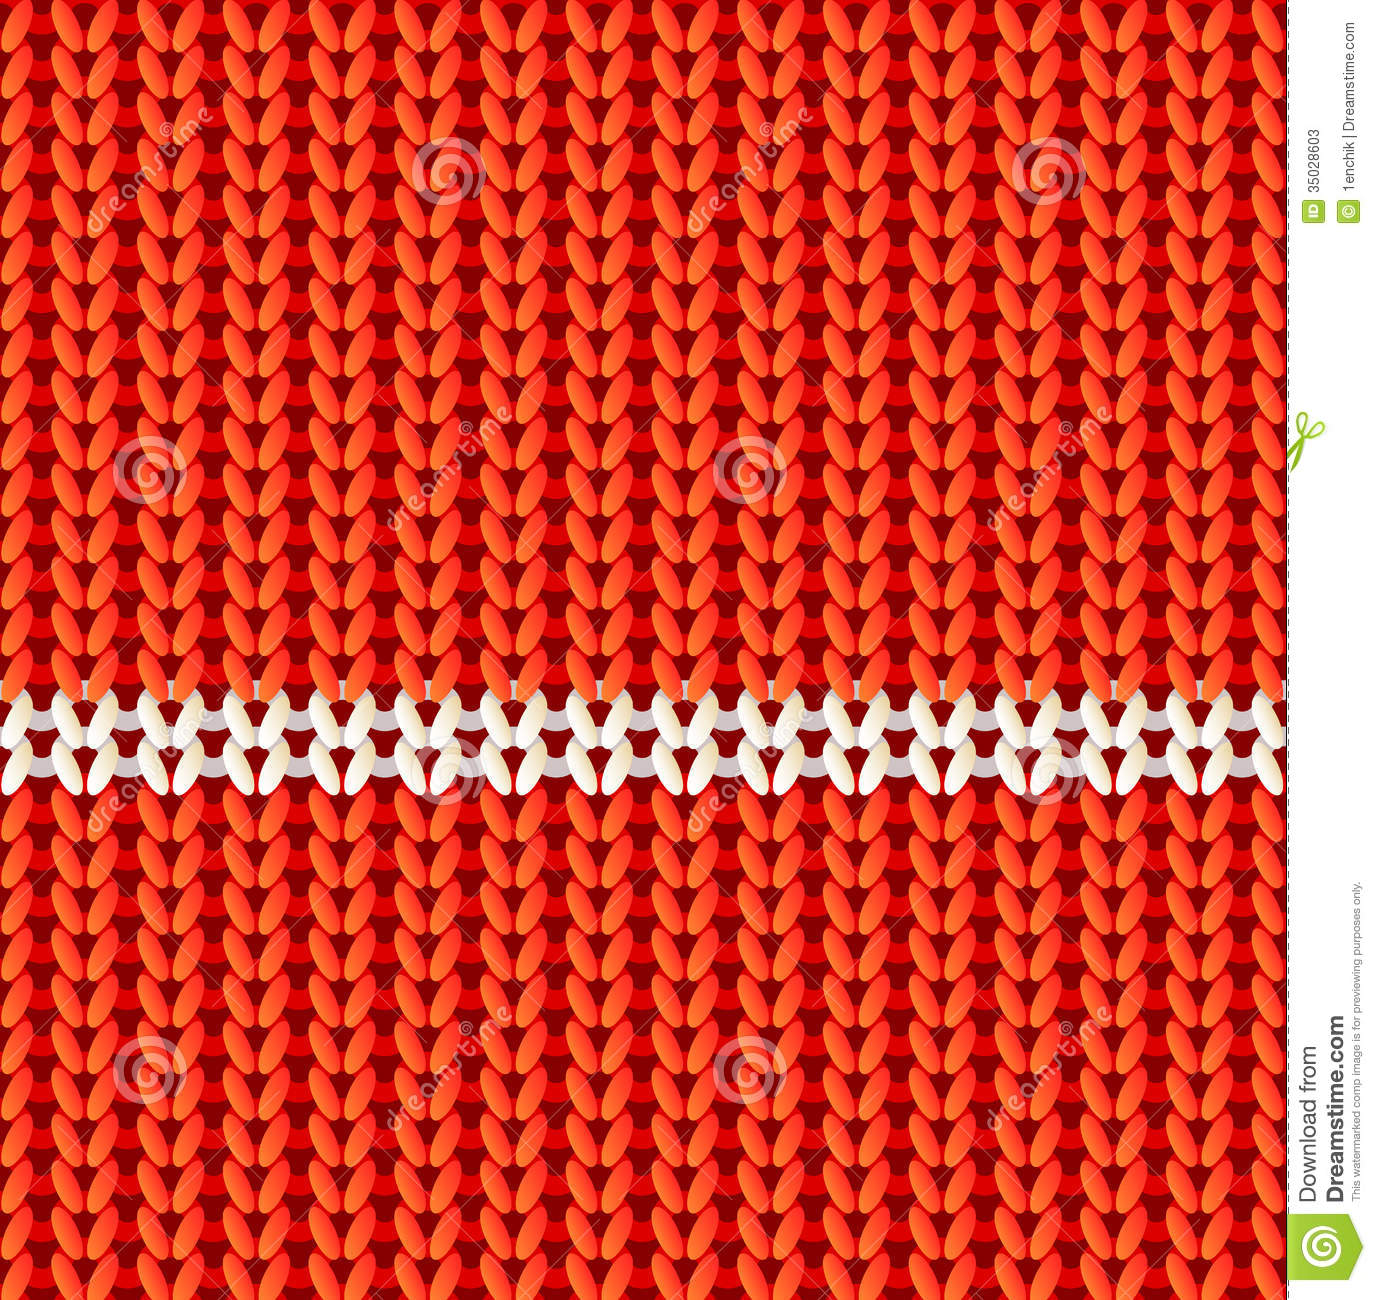 Knitting Stitches Vector : Red Knitted Vector Seamless Pattern Stock Photos - Image: 35028603